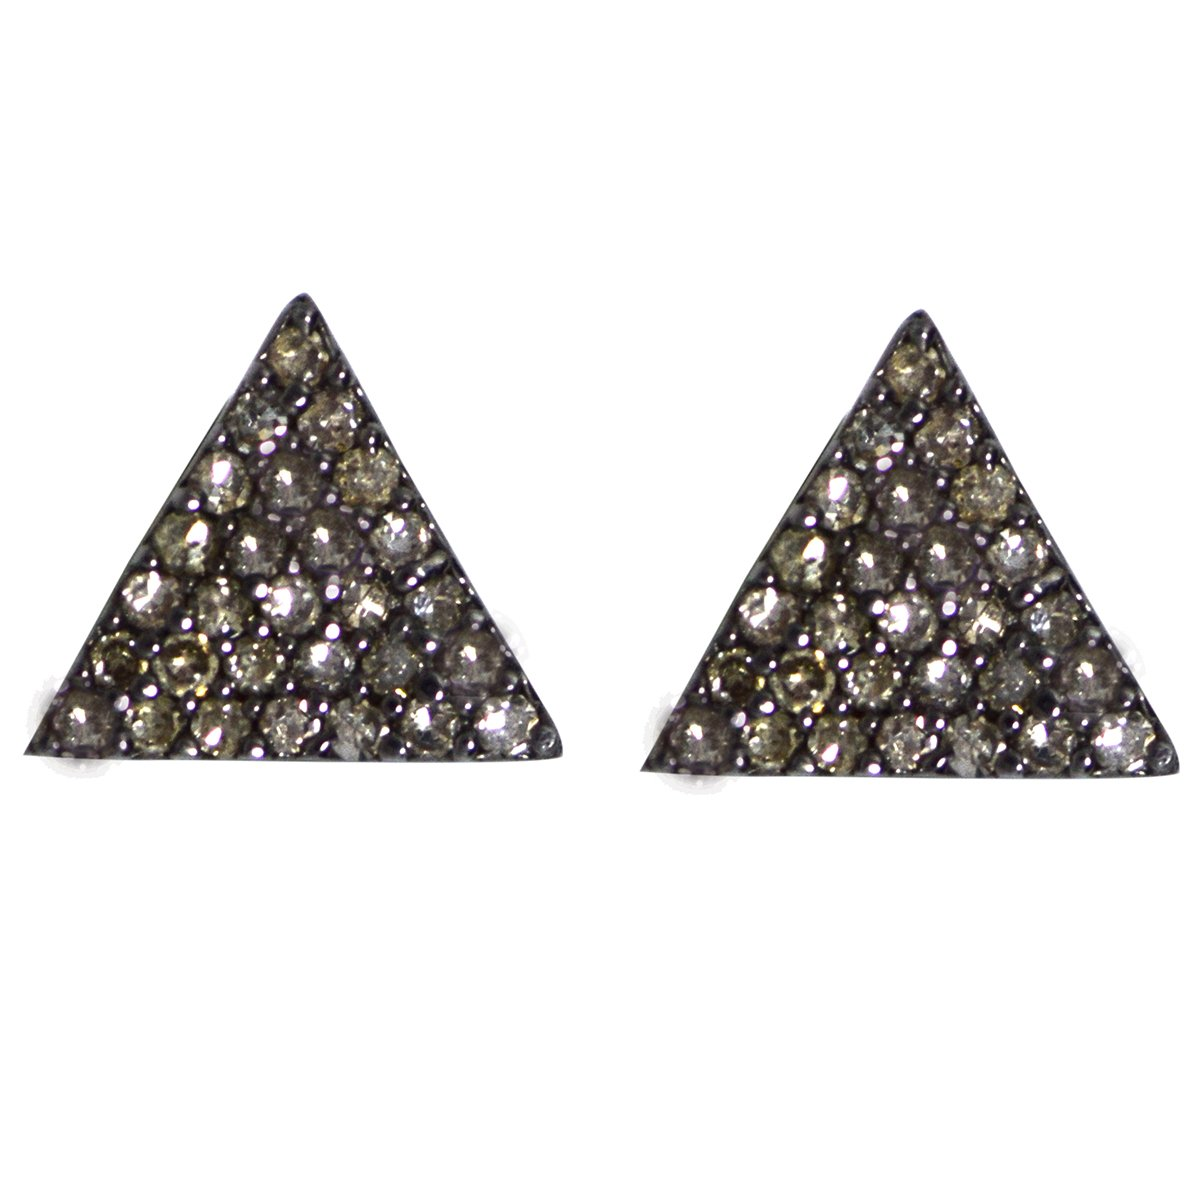 Round Cut Champagne Diamond Sterling Silver Triangle Shape Stud Earring For Party Wear